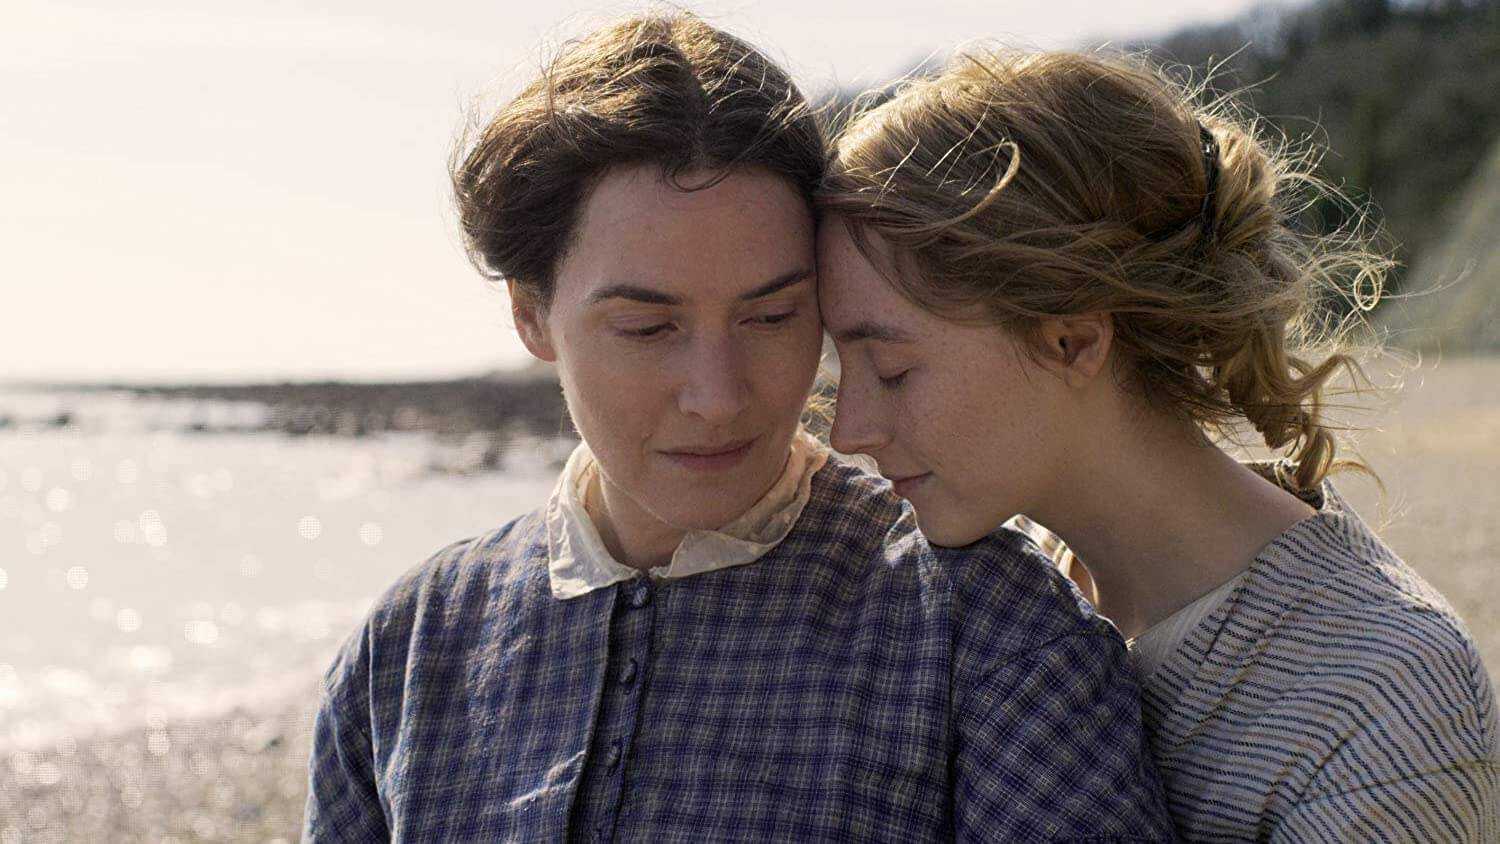 ammonite-movie-2020-kate-winslet-Saoirse-Ronan